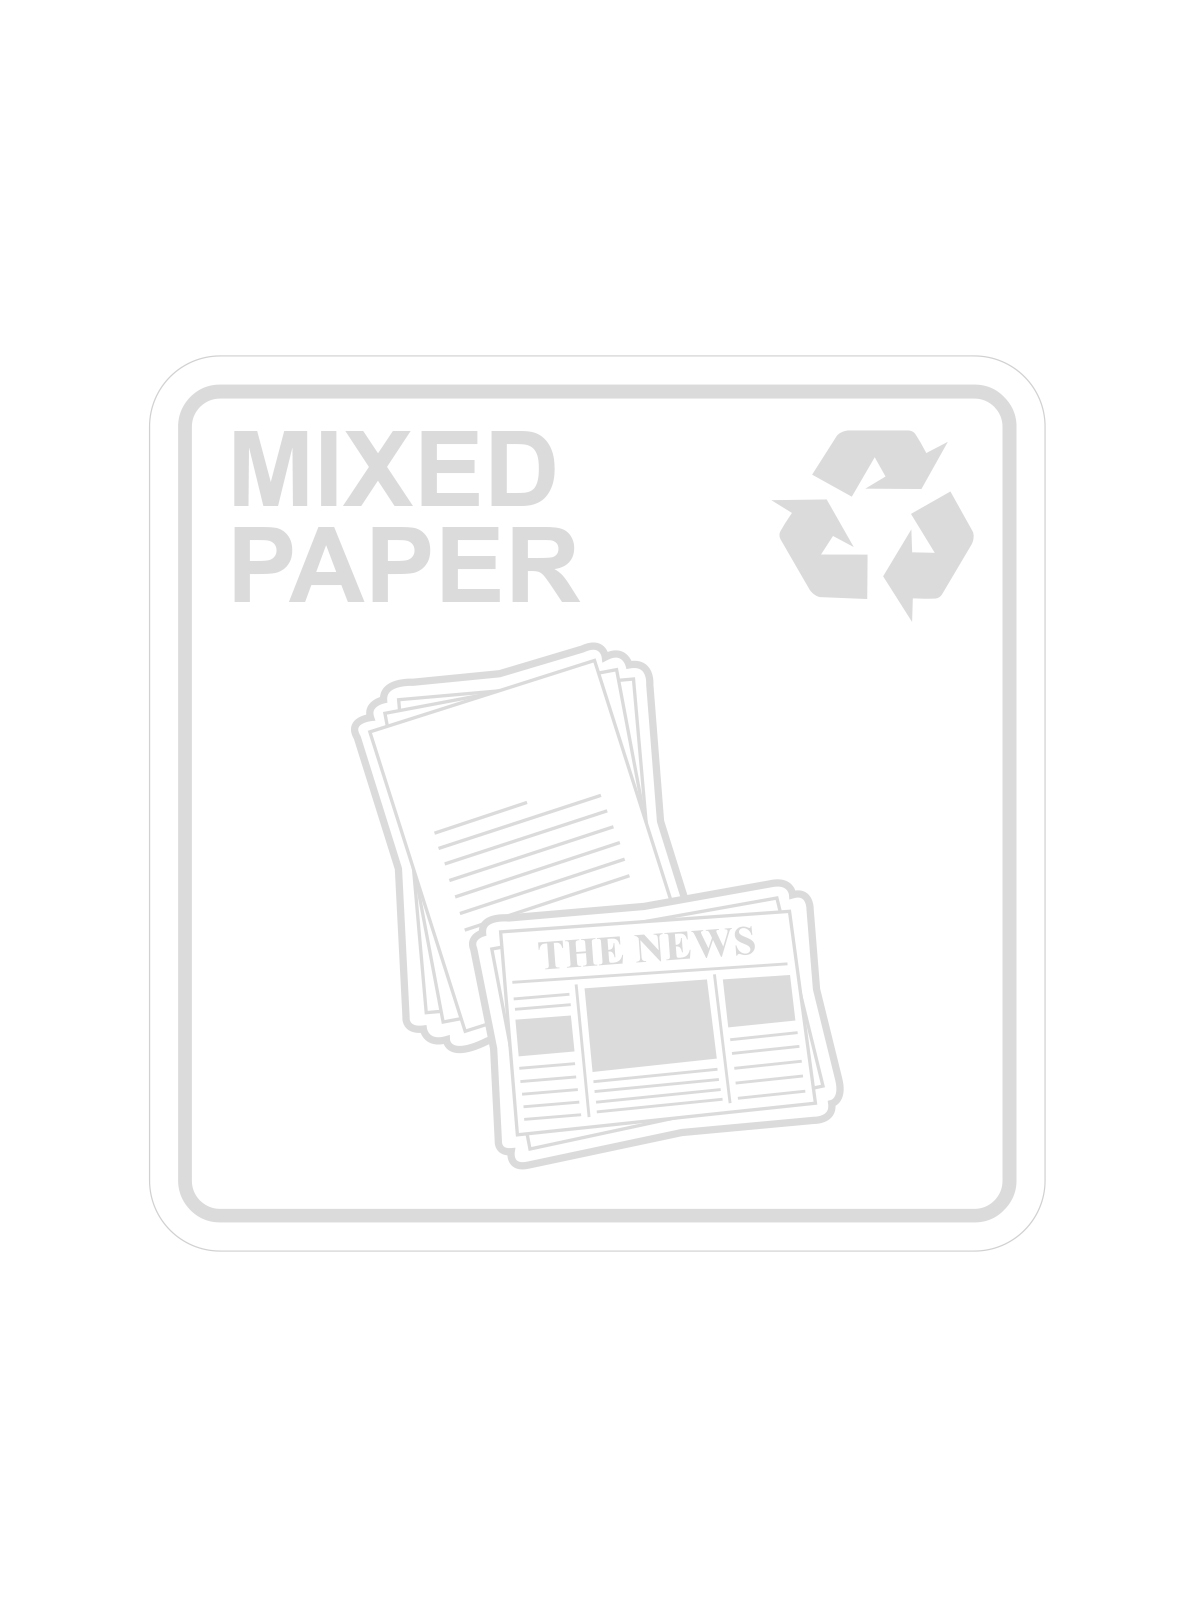 WASTE WATCHER - Label - Mixed Paper - Clear-White